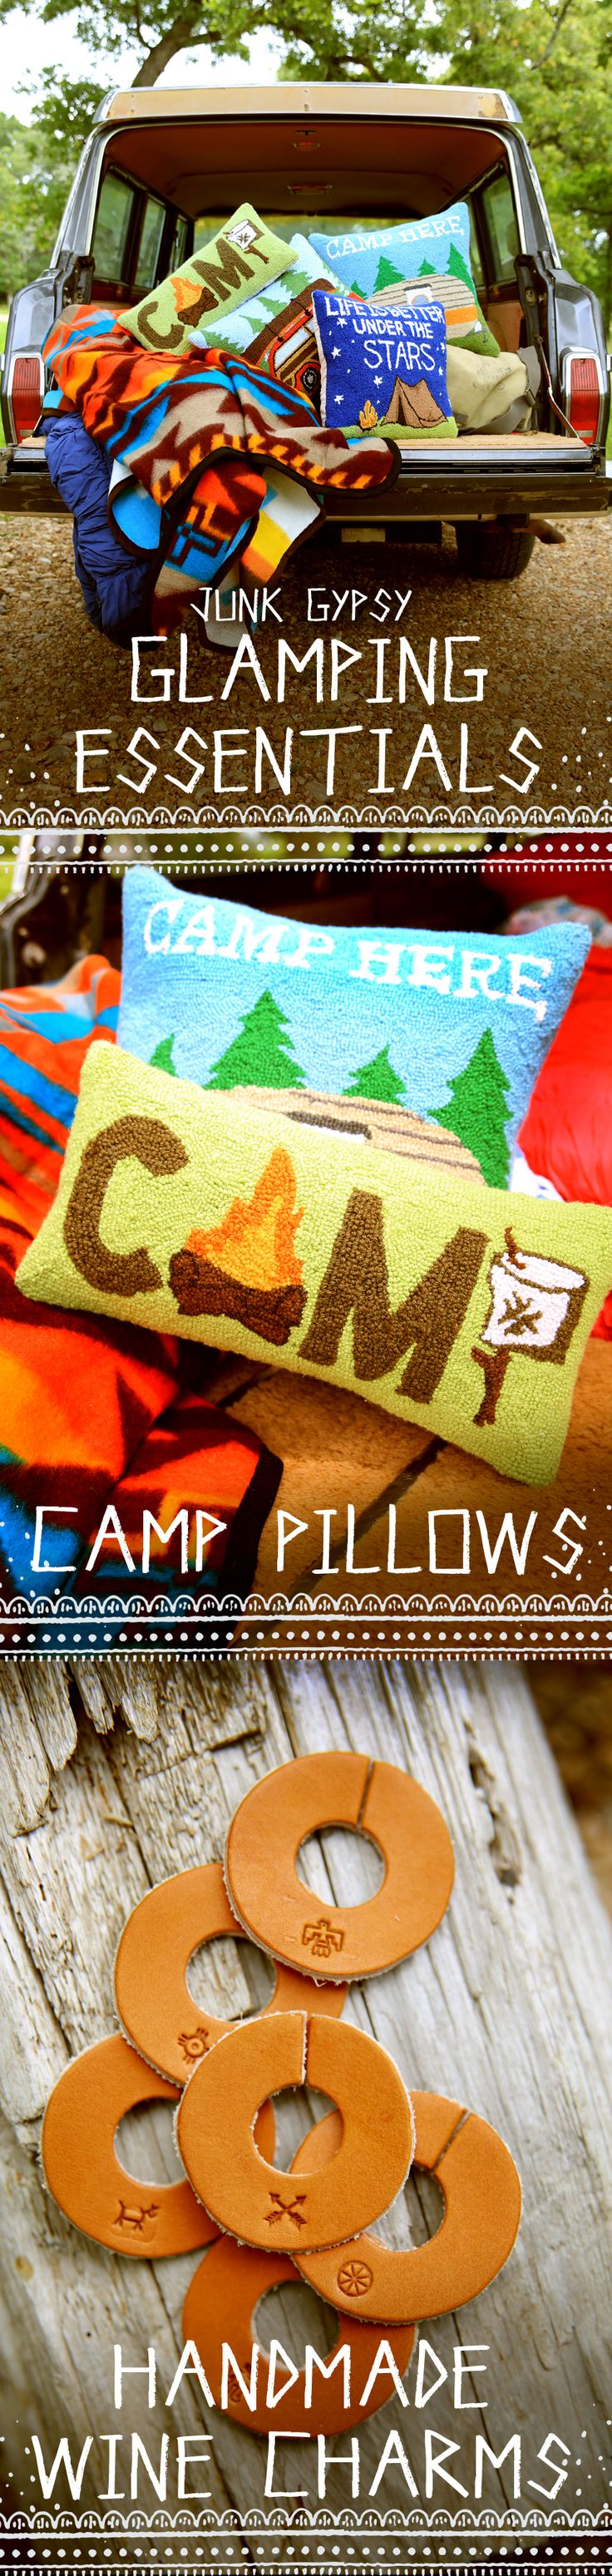 junk gypsy glamping essentials // glamp, camp, and wander in style! {junk gypsy co}